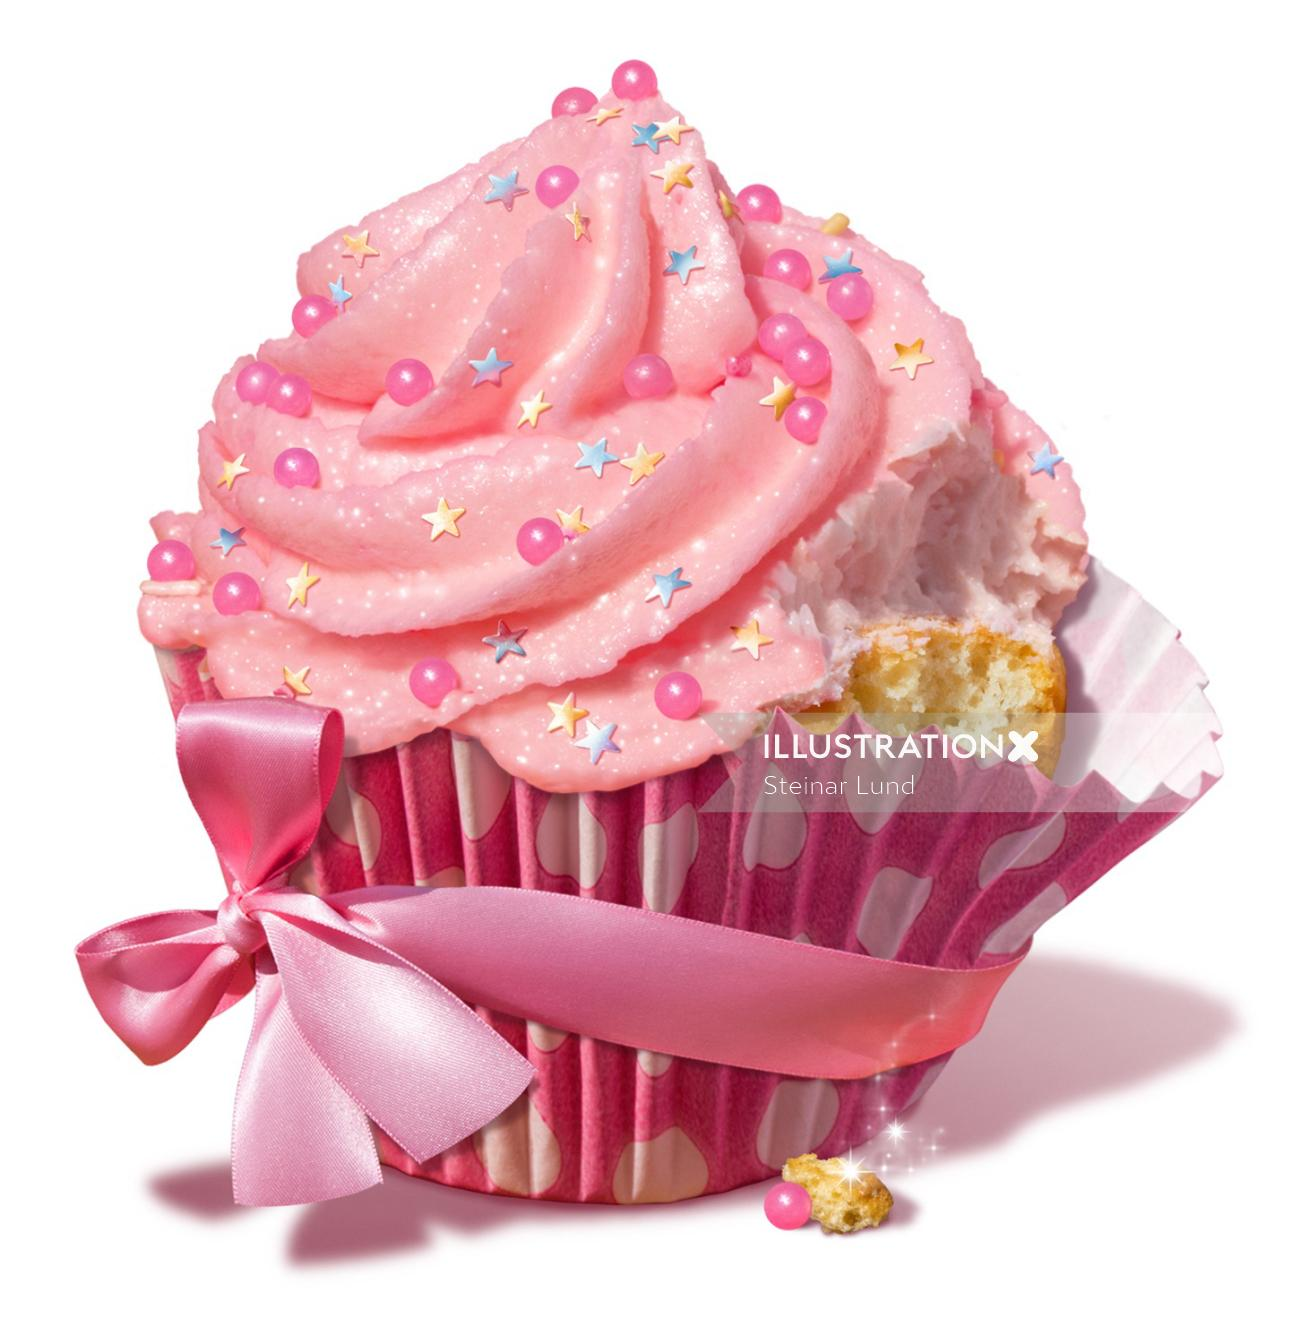 Illustration of Magic Cupcake